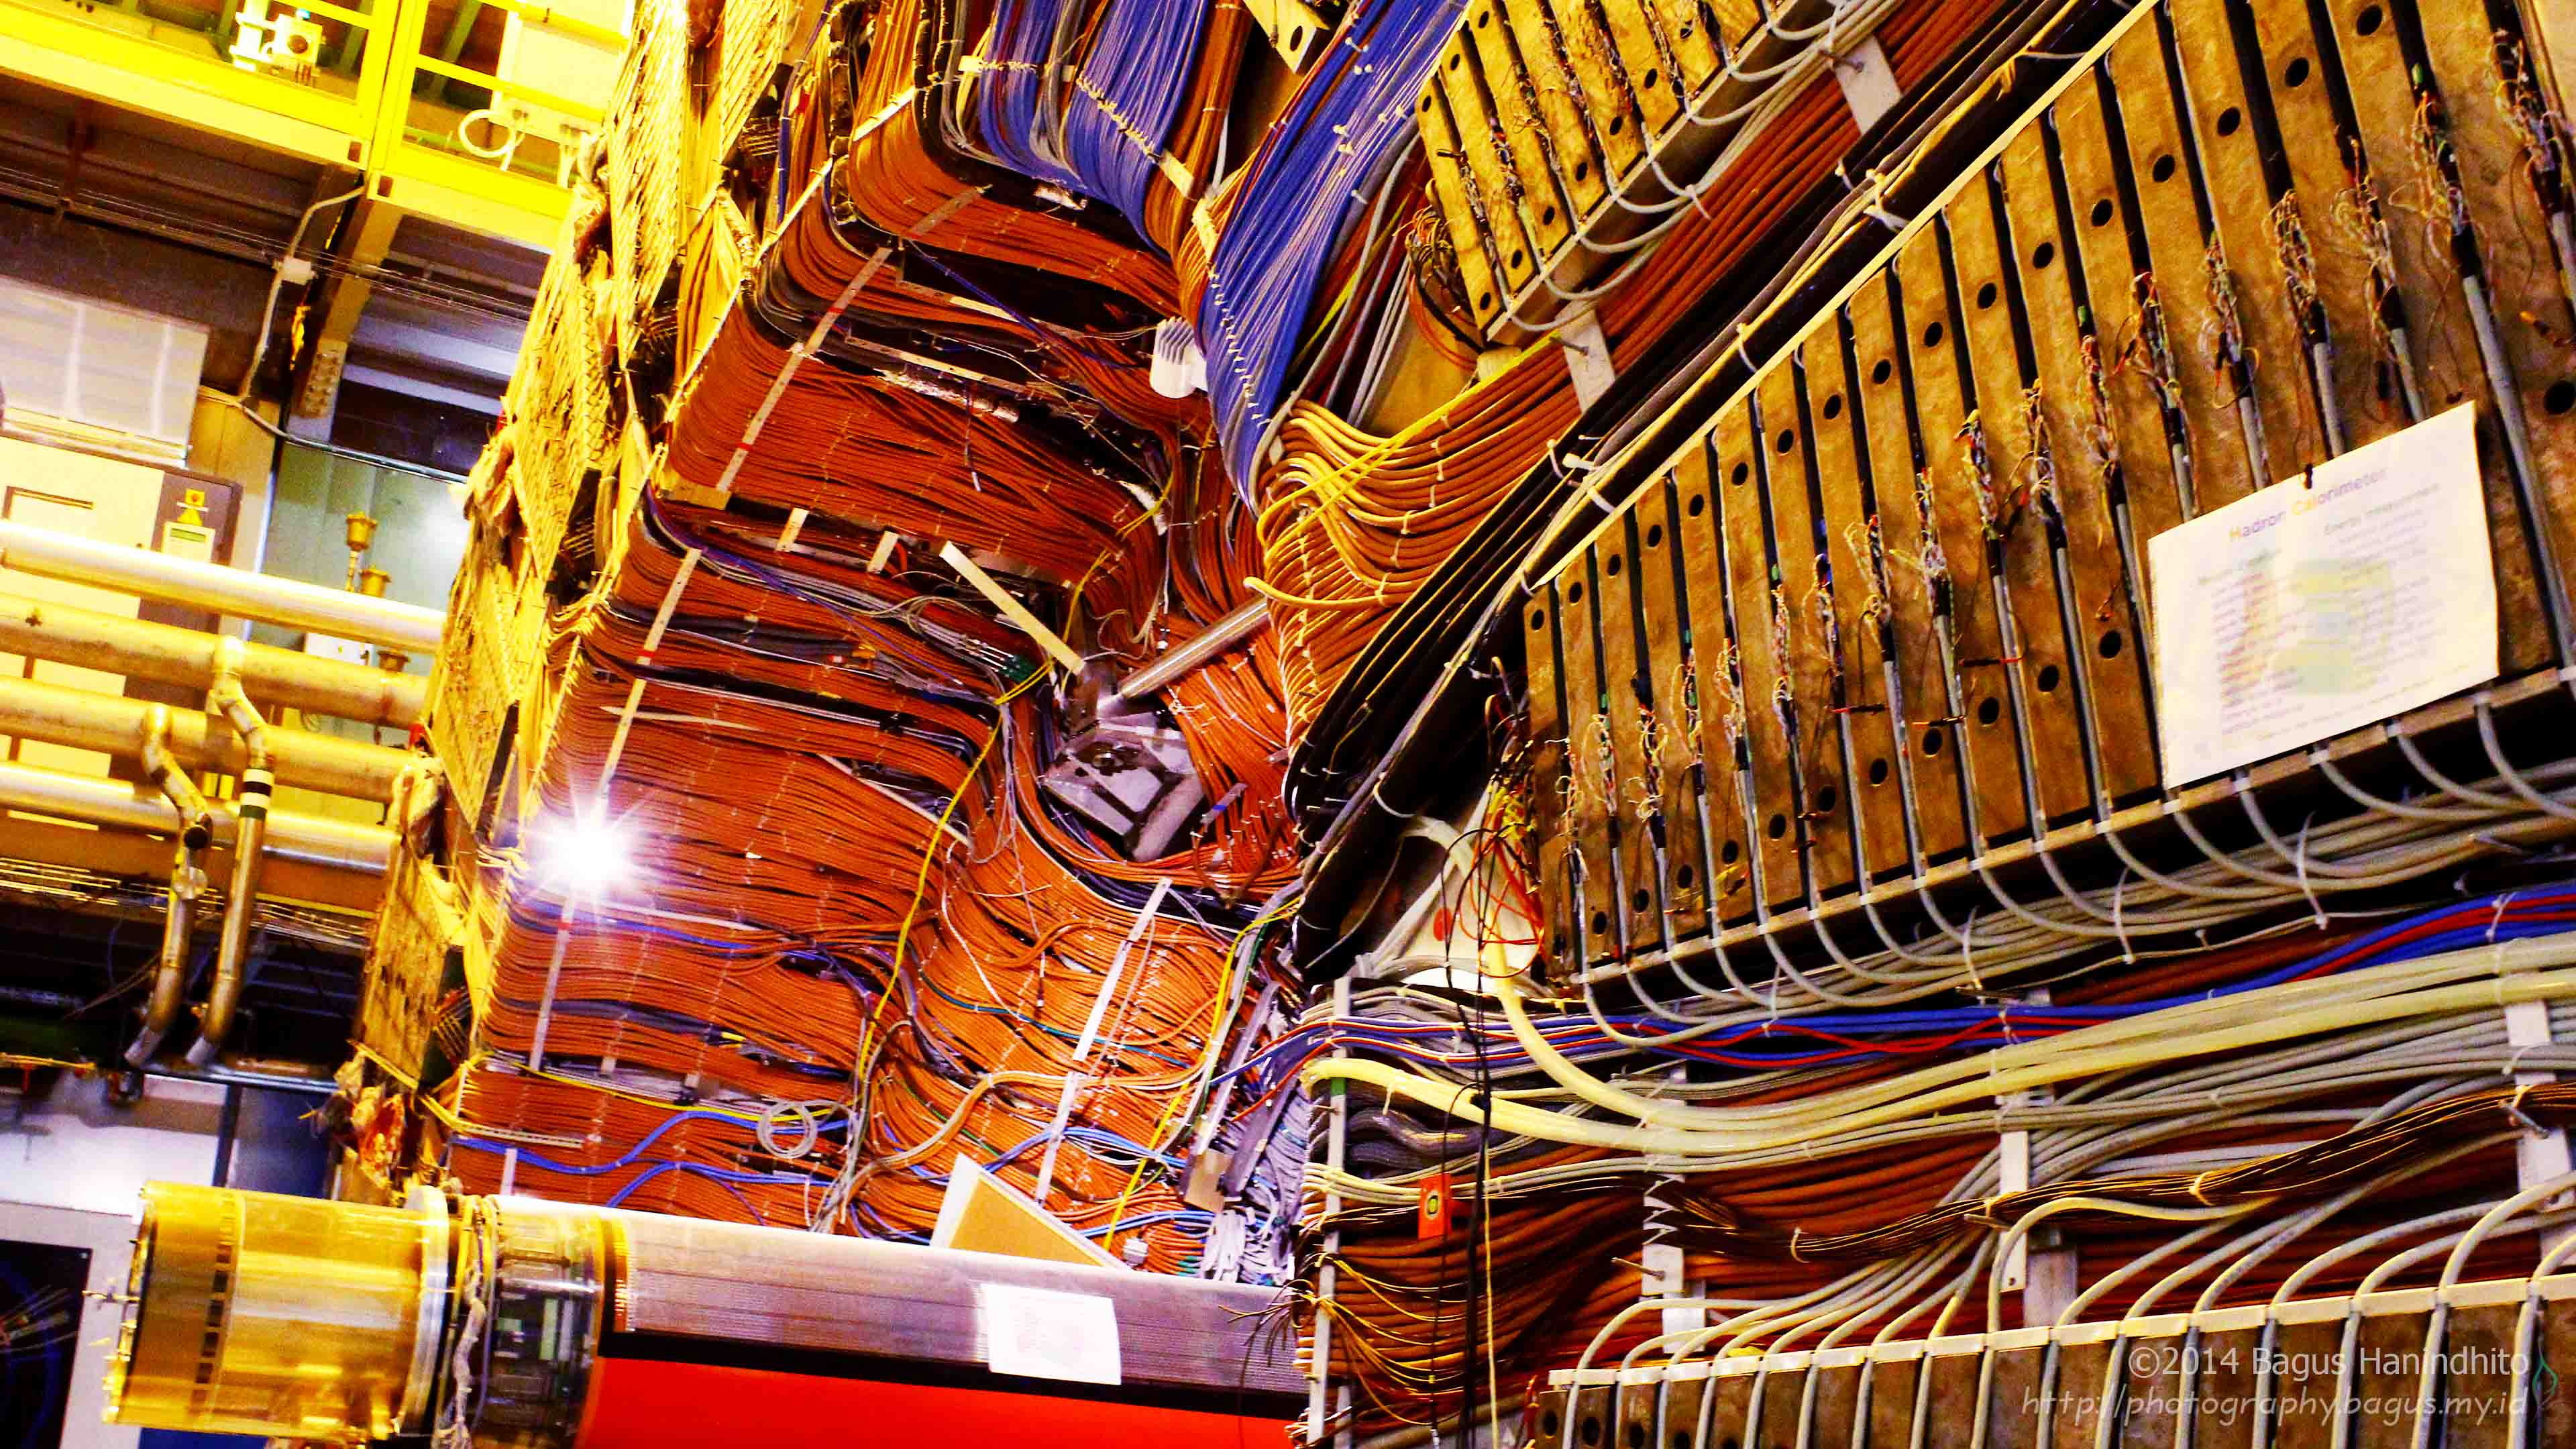 The decomissioned DELPHI particle detector from LEP experiment is now shown for exhibition in the same cavern as LHCb.